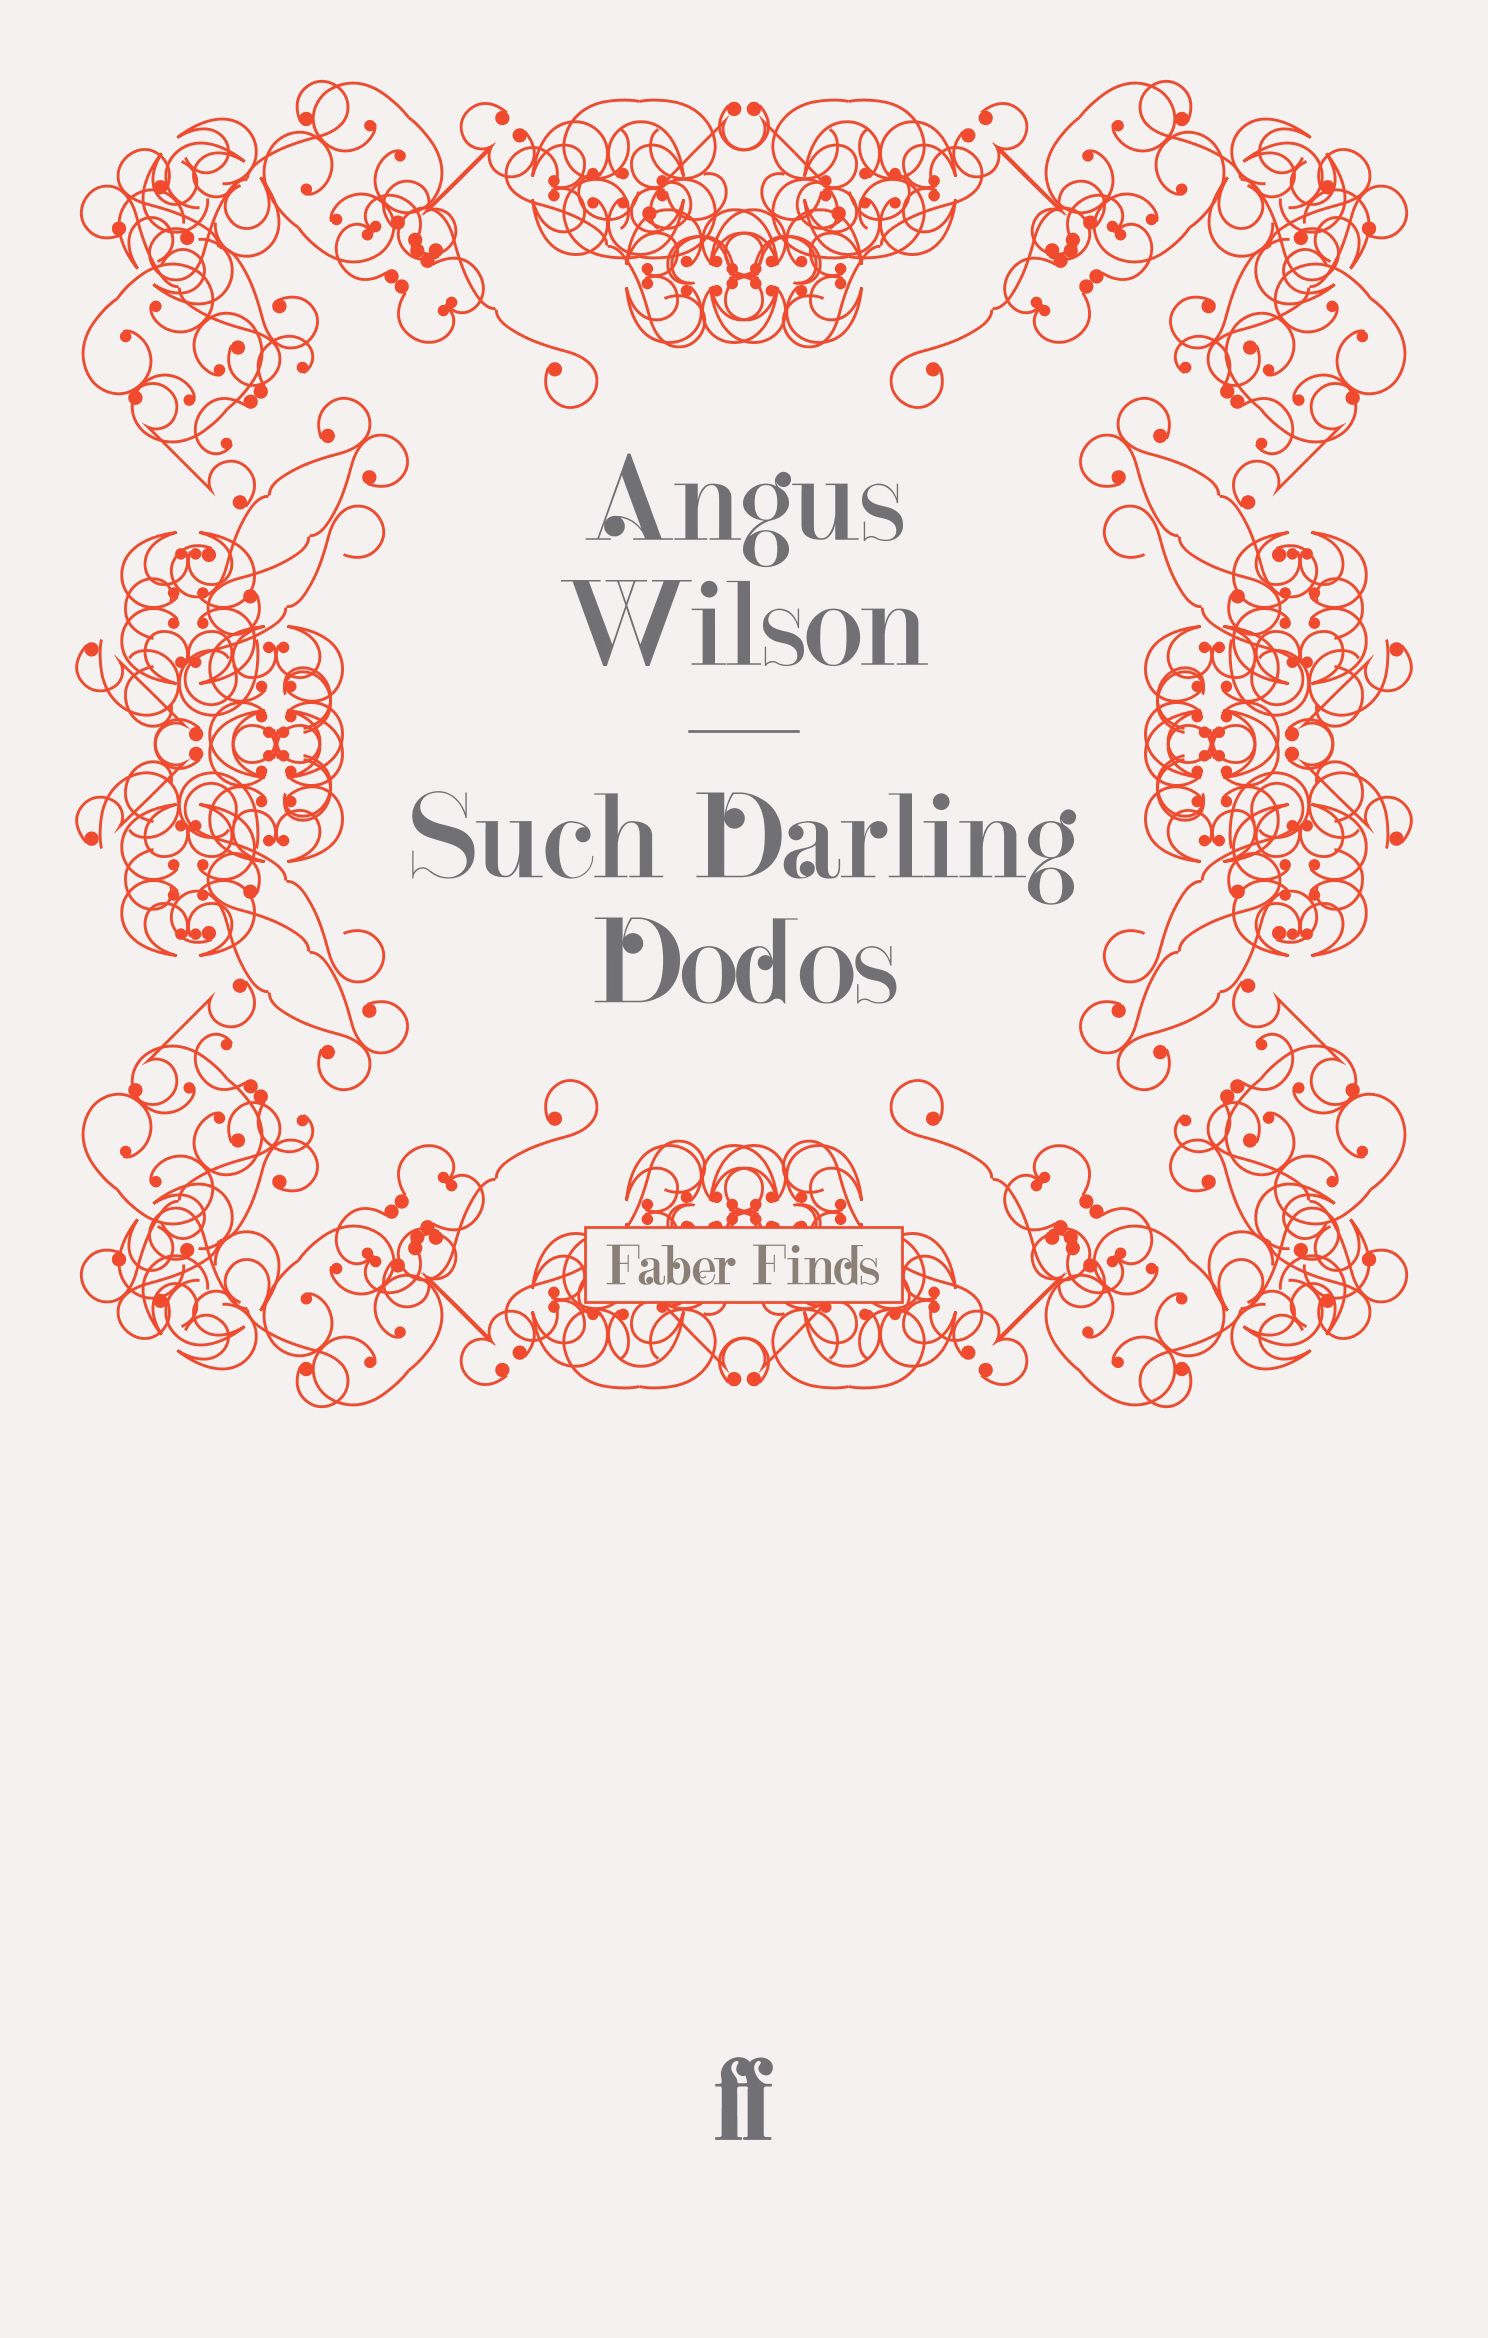 Such Darling Dodos By: Angus Wilson